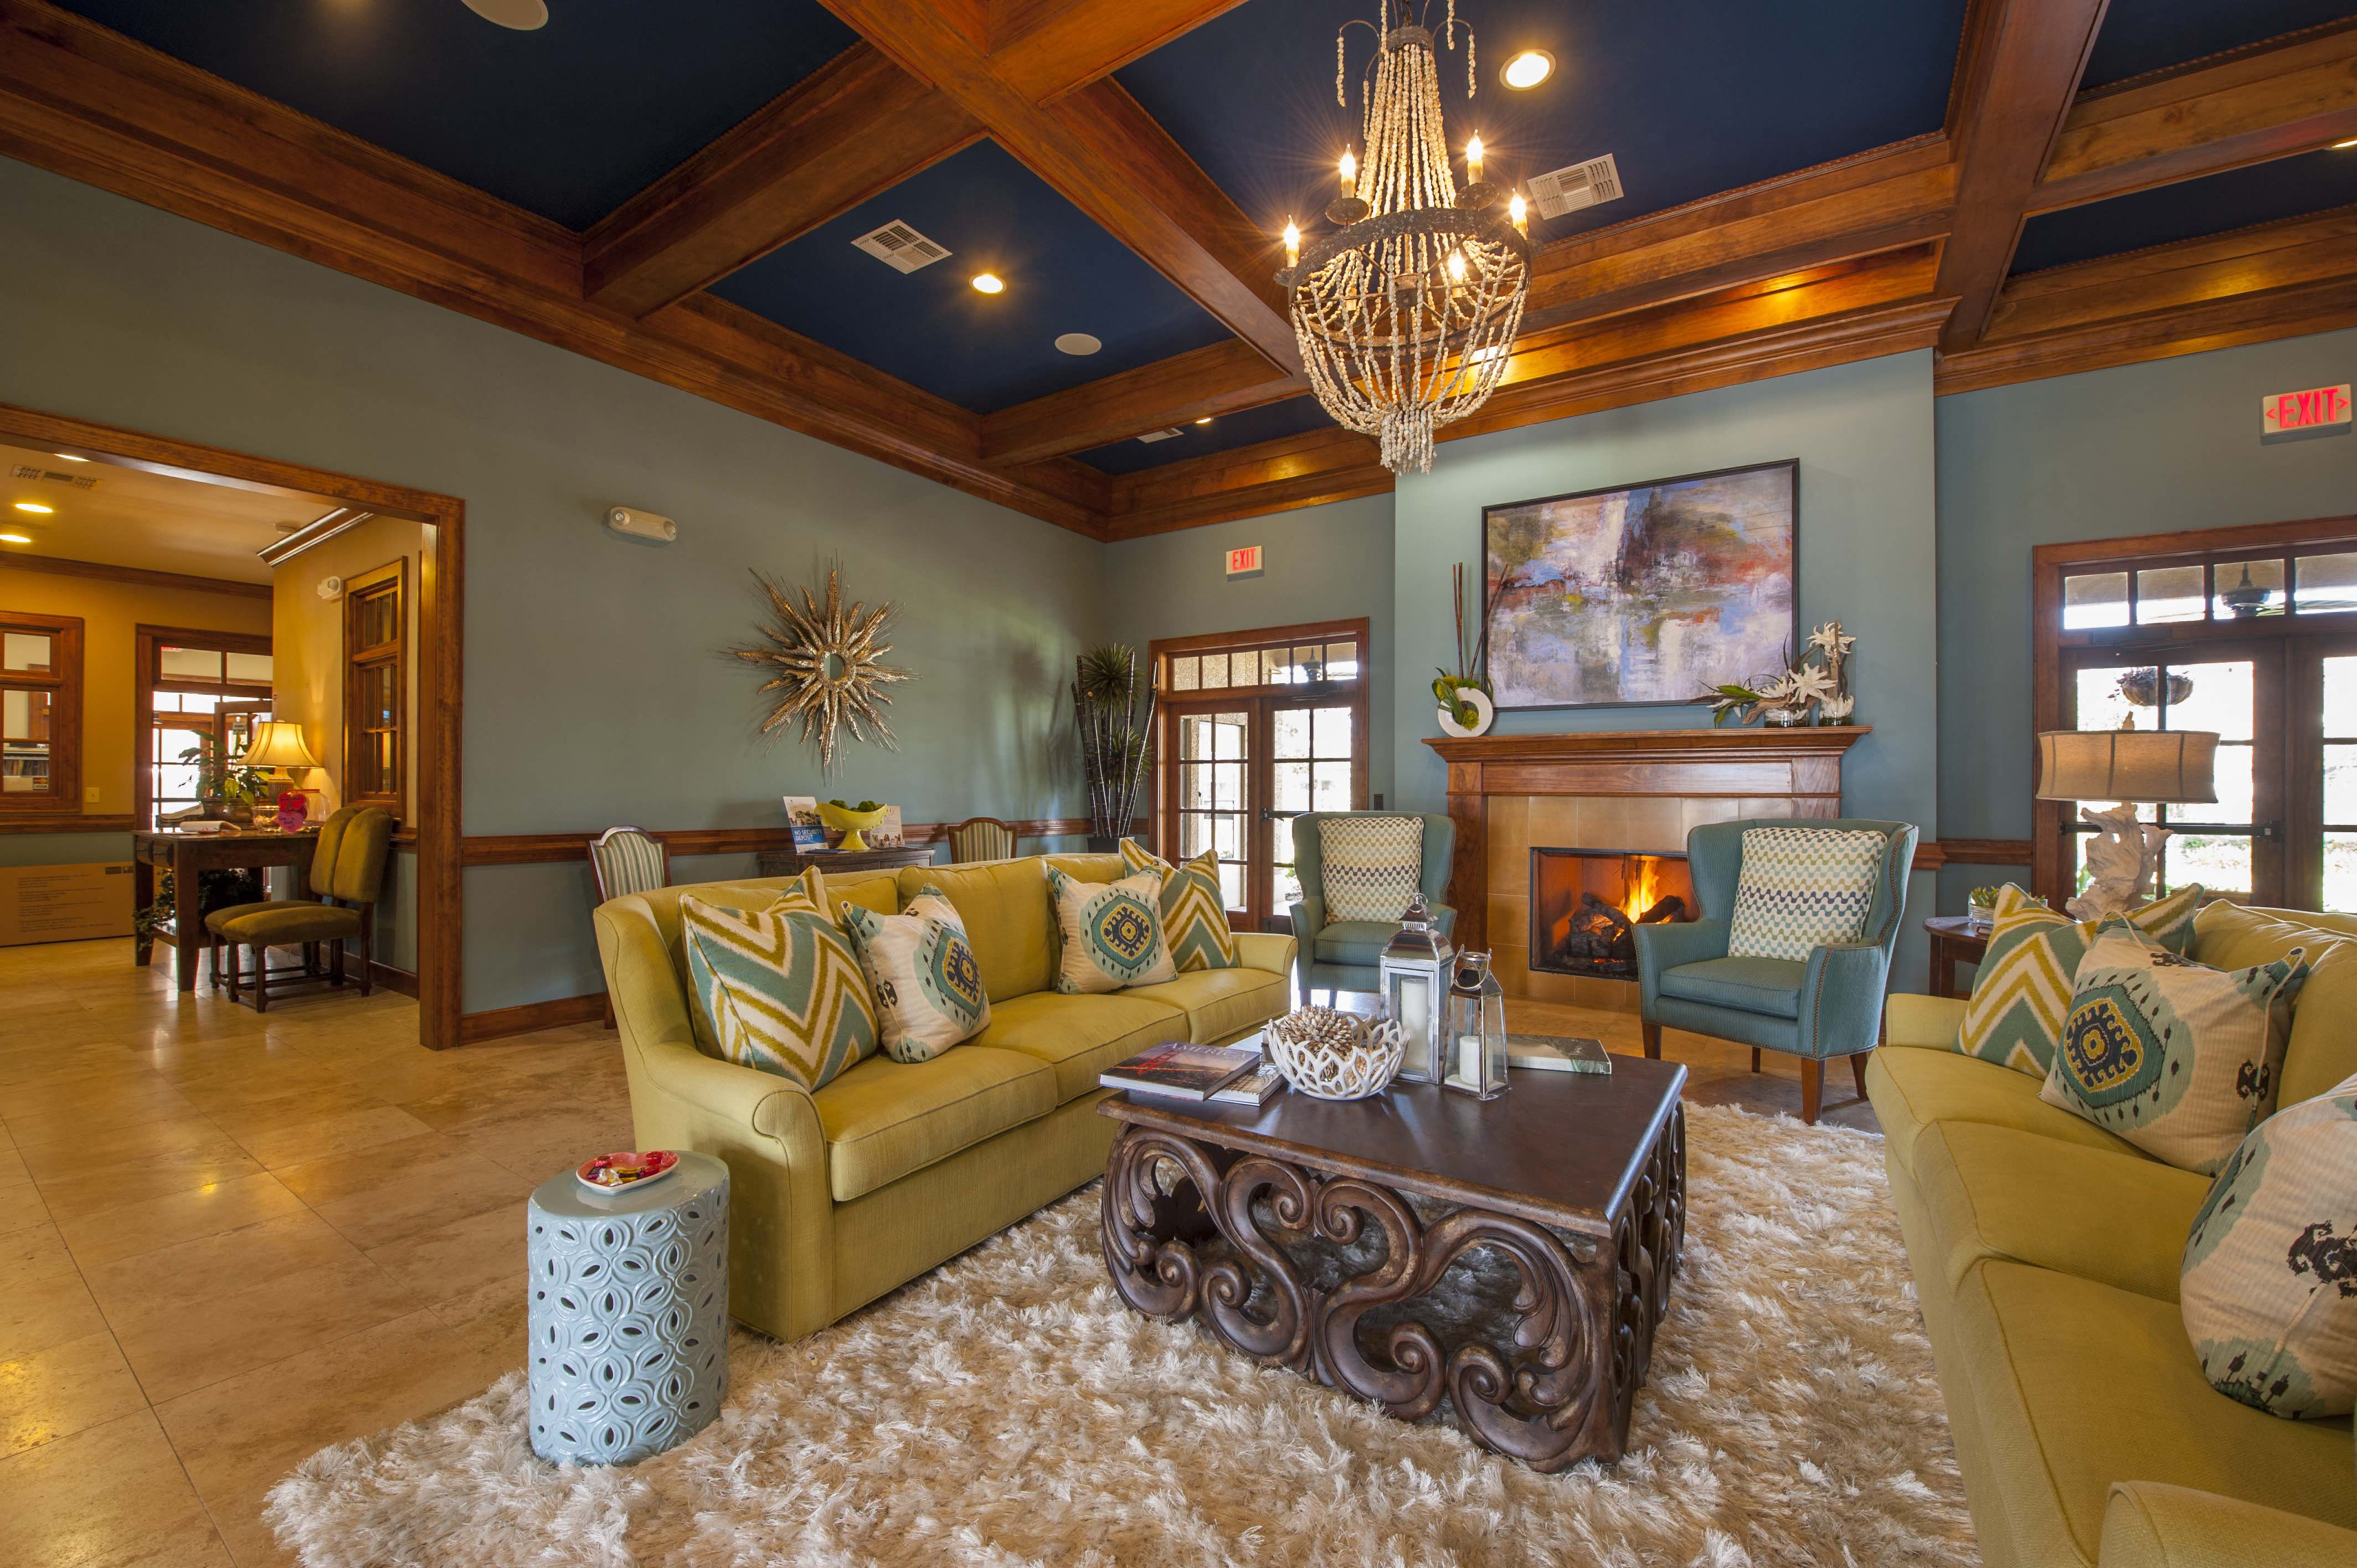 Living Room Remodel With Standard Fireplace at Century South Shore, League City, TX, 77573